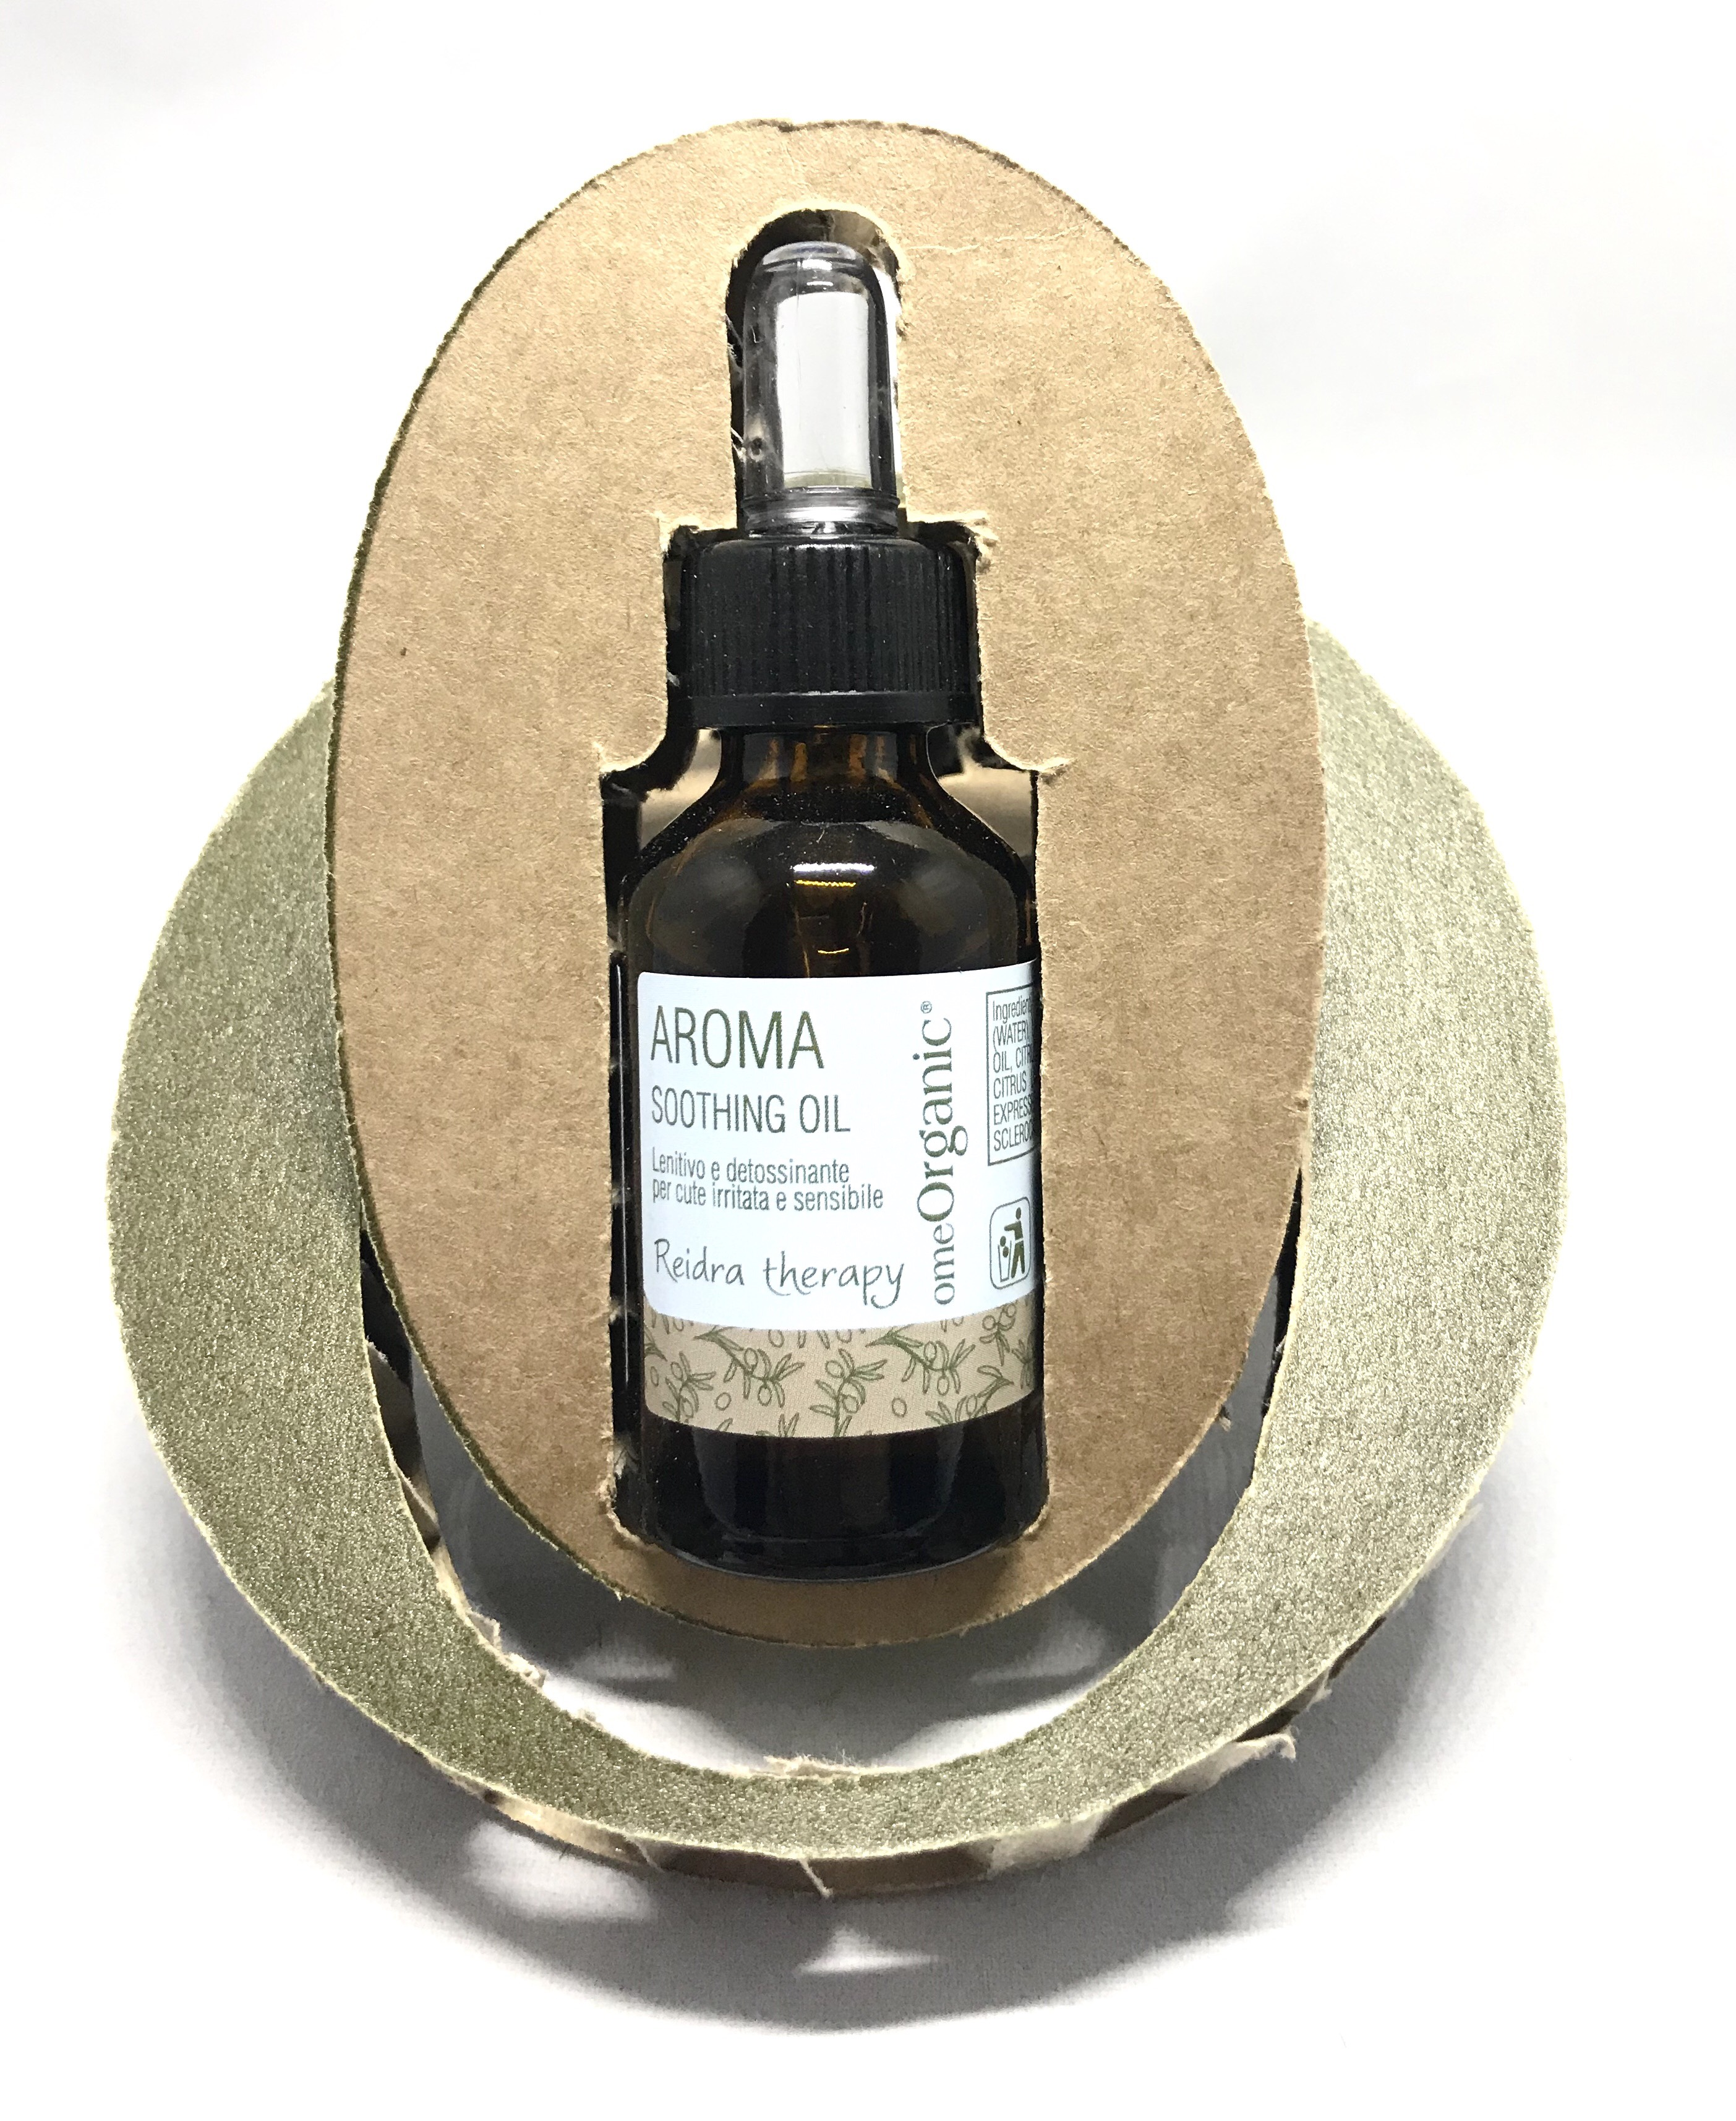 aroma soothing oil